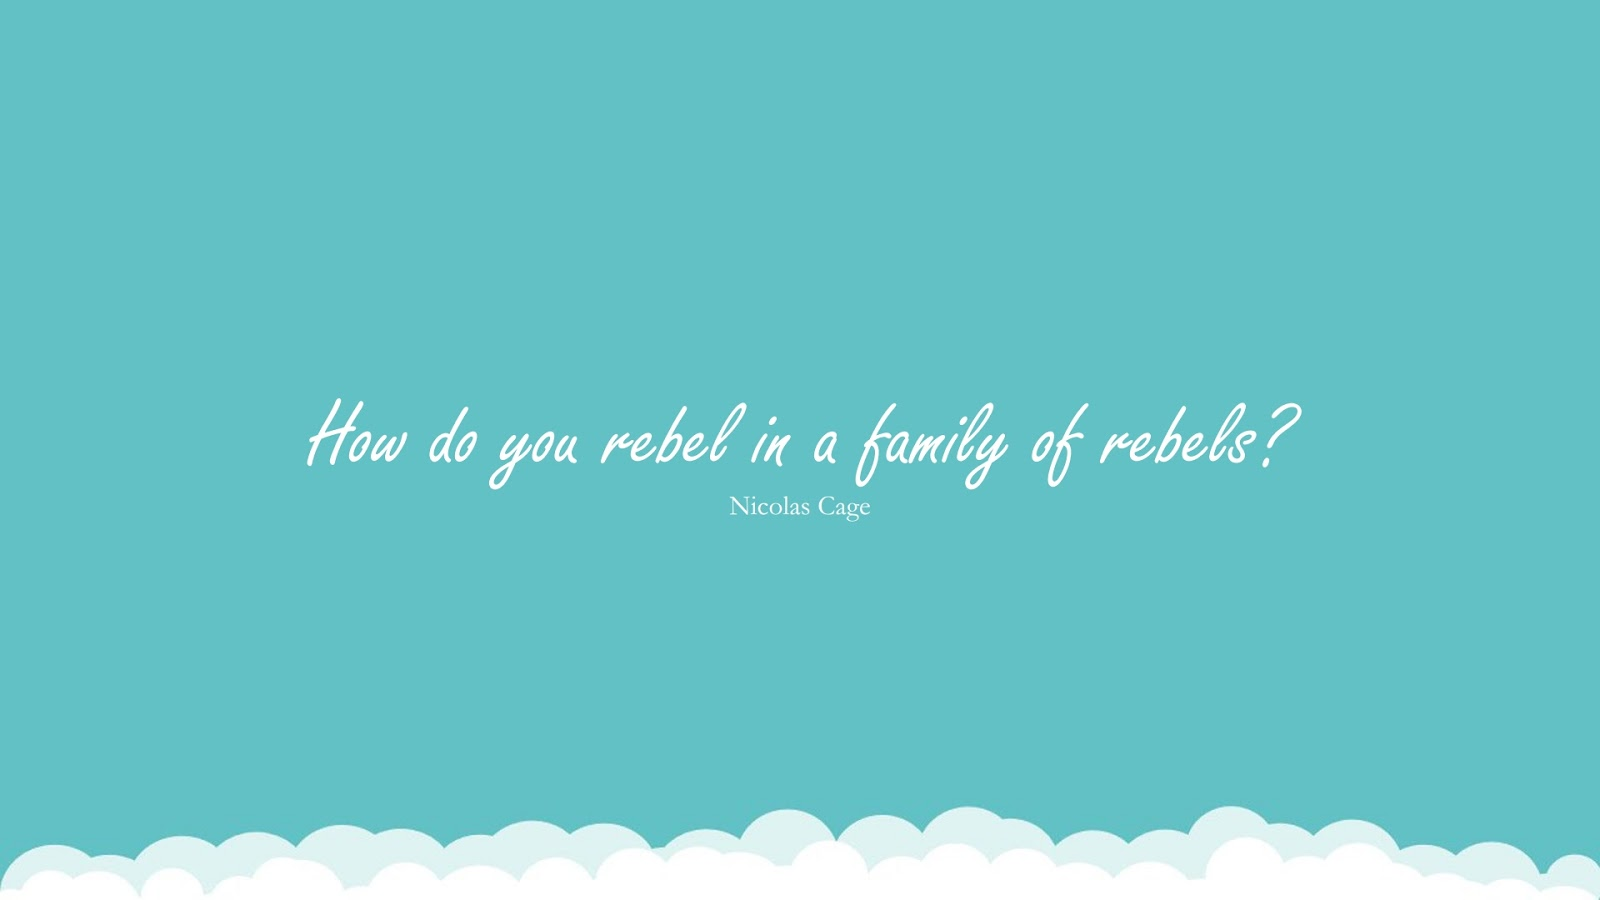 How do you rebel in a family of rebels? (Nicolas Cage);  #FamilyQuotes